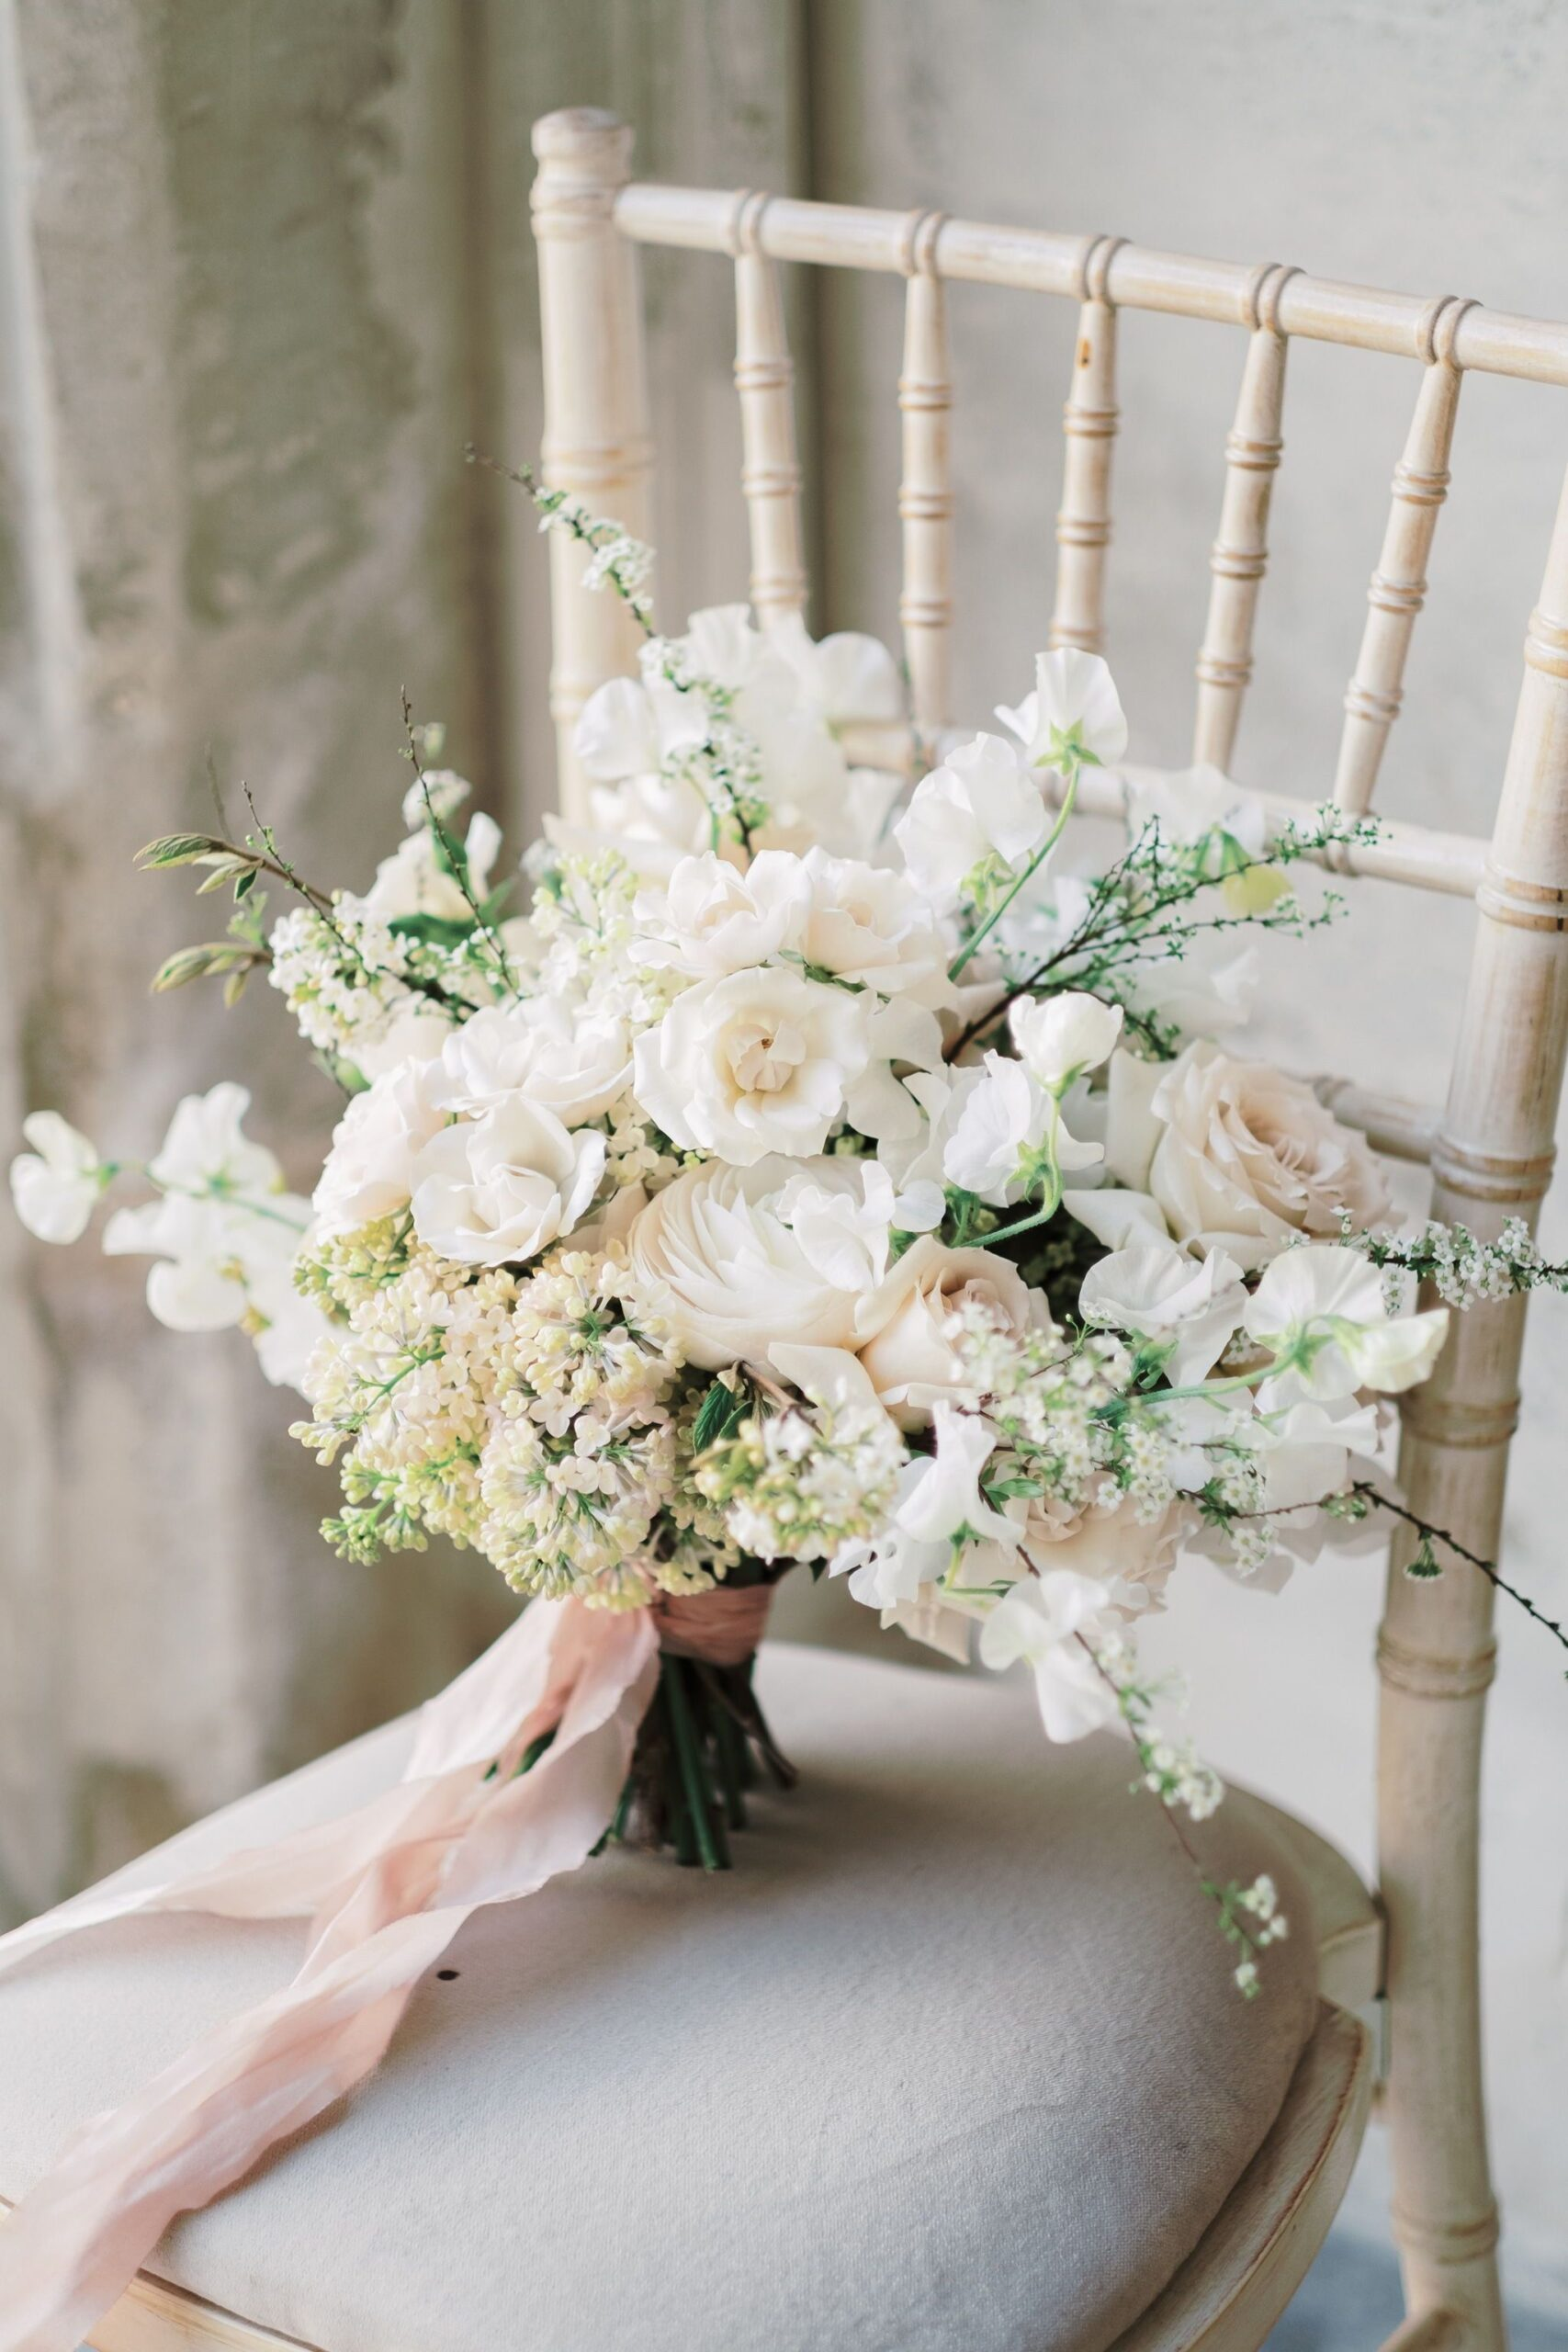 silk wedding bouquets to choose for the classy bridal 4 scaled - Silk Wedding Bouquets to Choose for The Classy Bridal